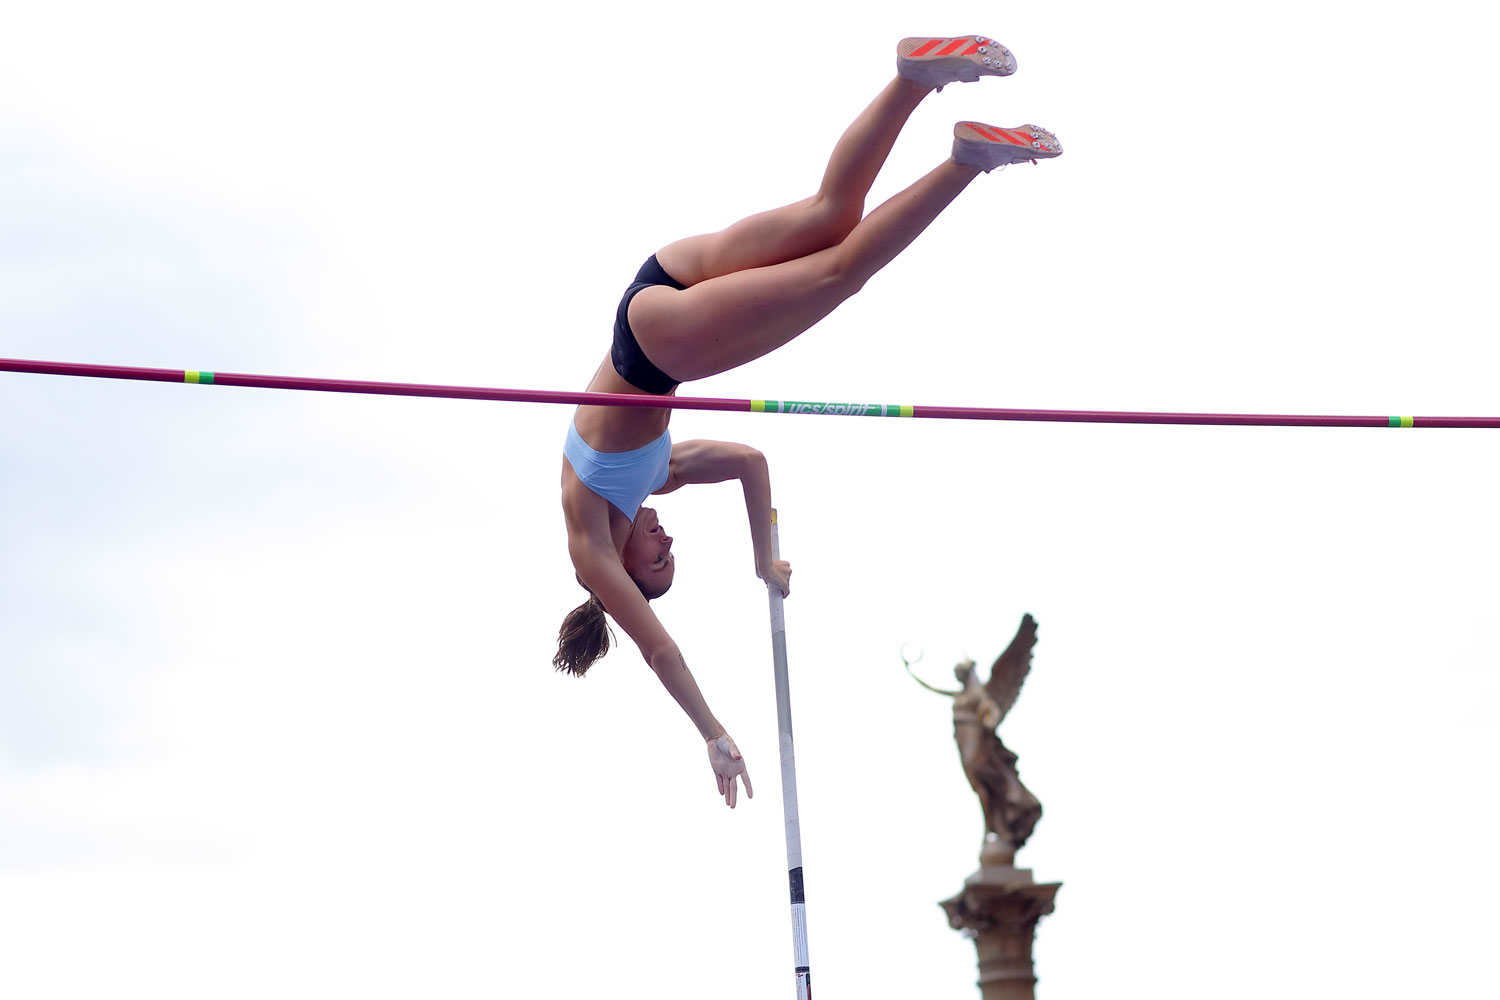 pole-vault-of-prague-16